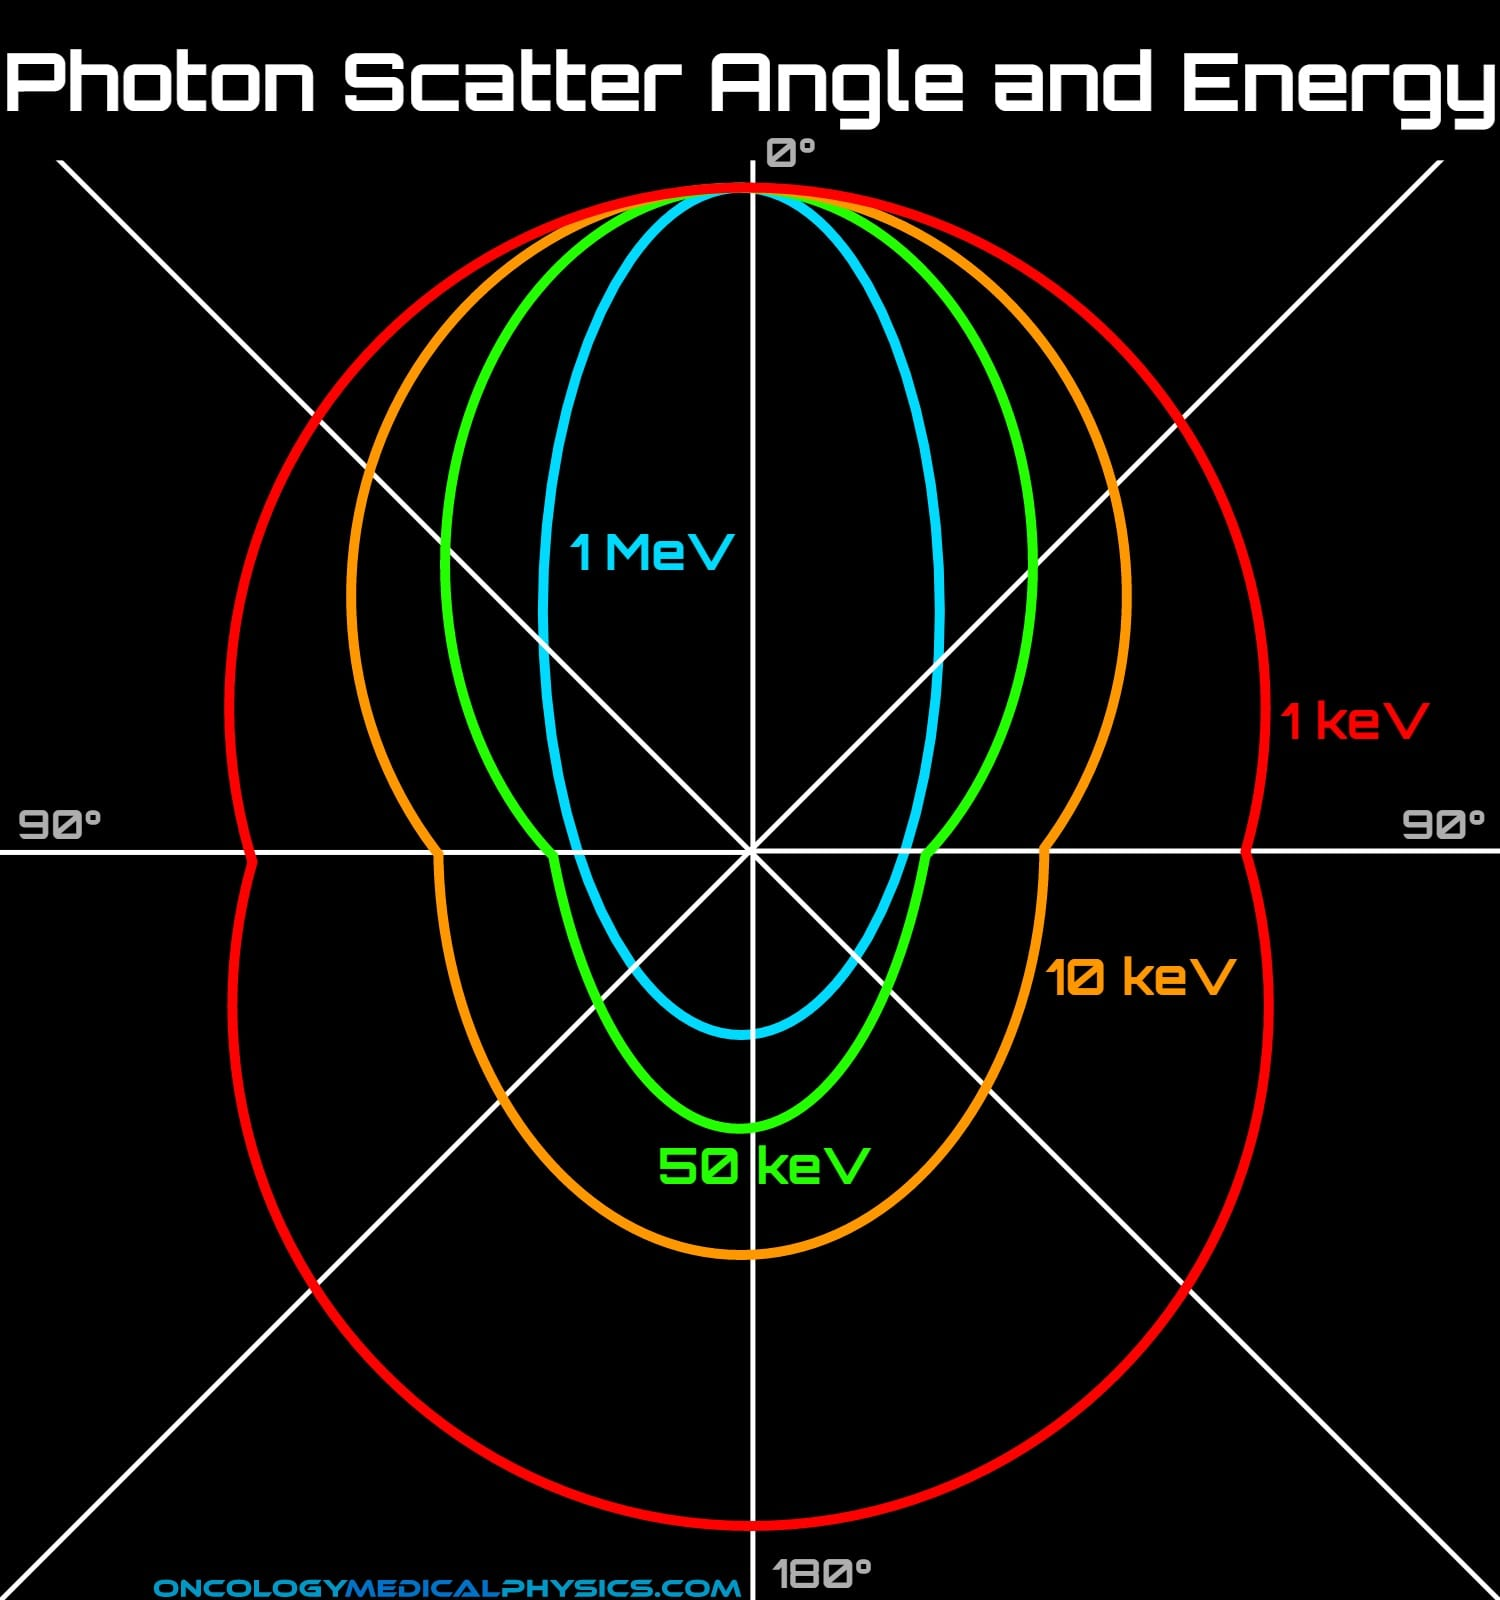 Scatter angle impacts kV photons causing back scatter for energies.